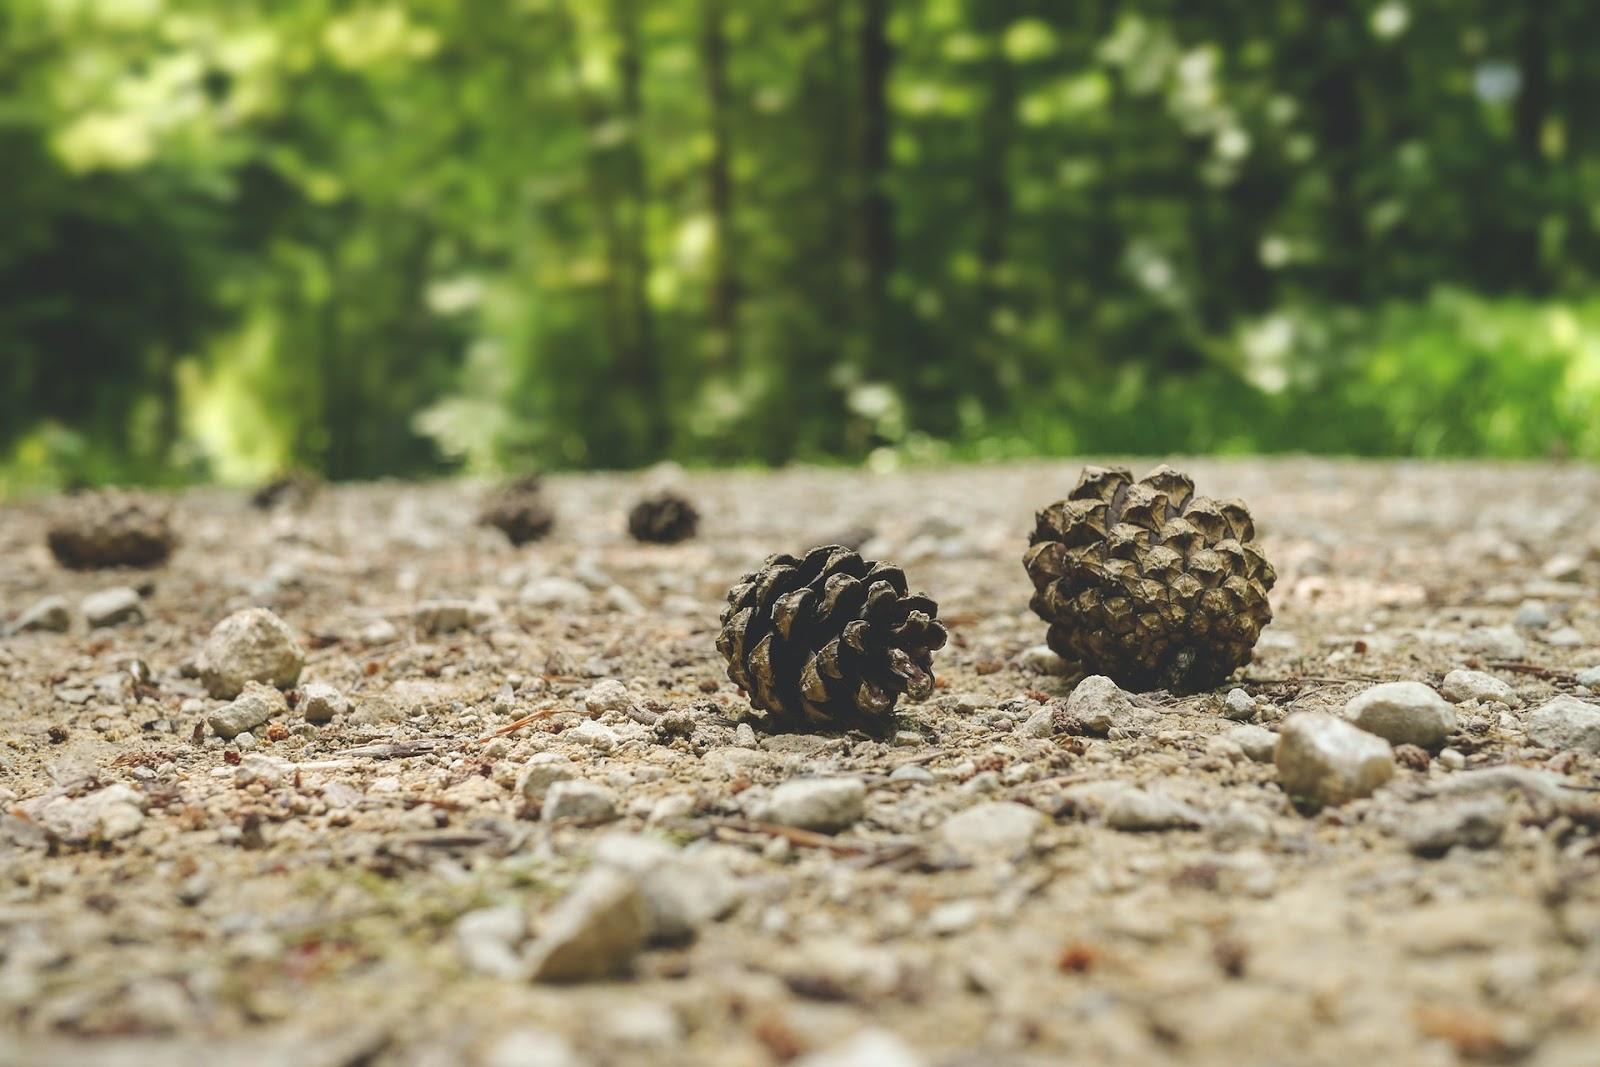 Pine cones on the ground that can be collected for a fun autumn activity.